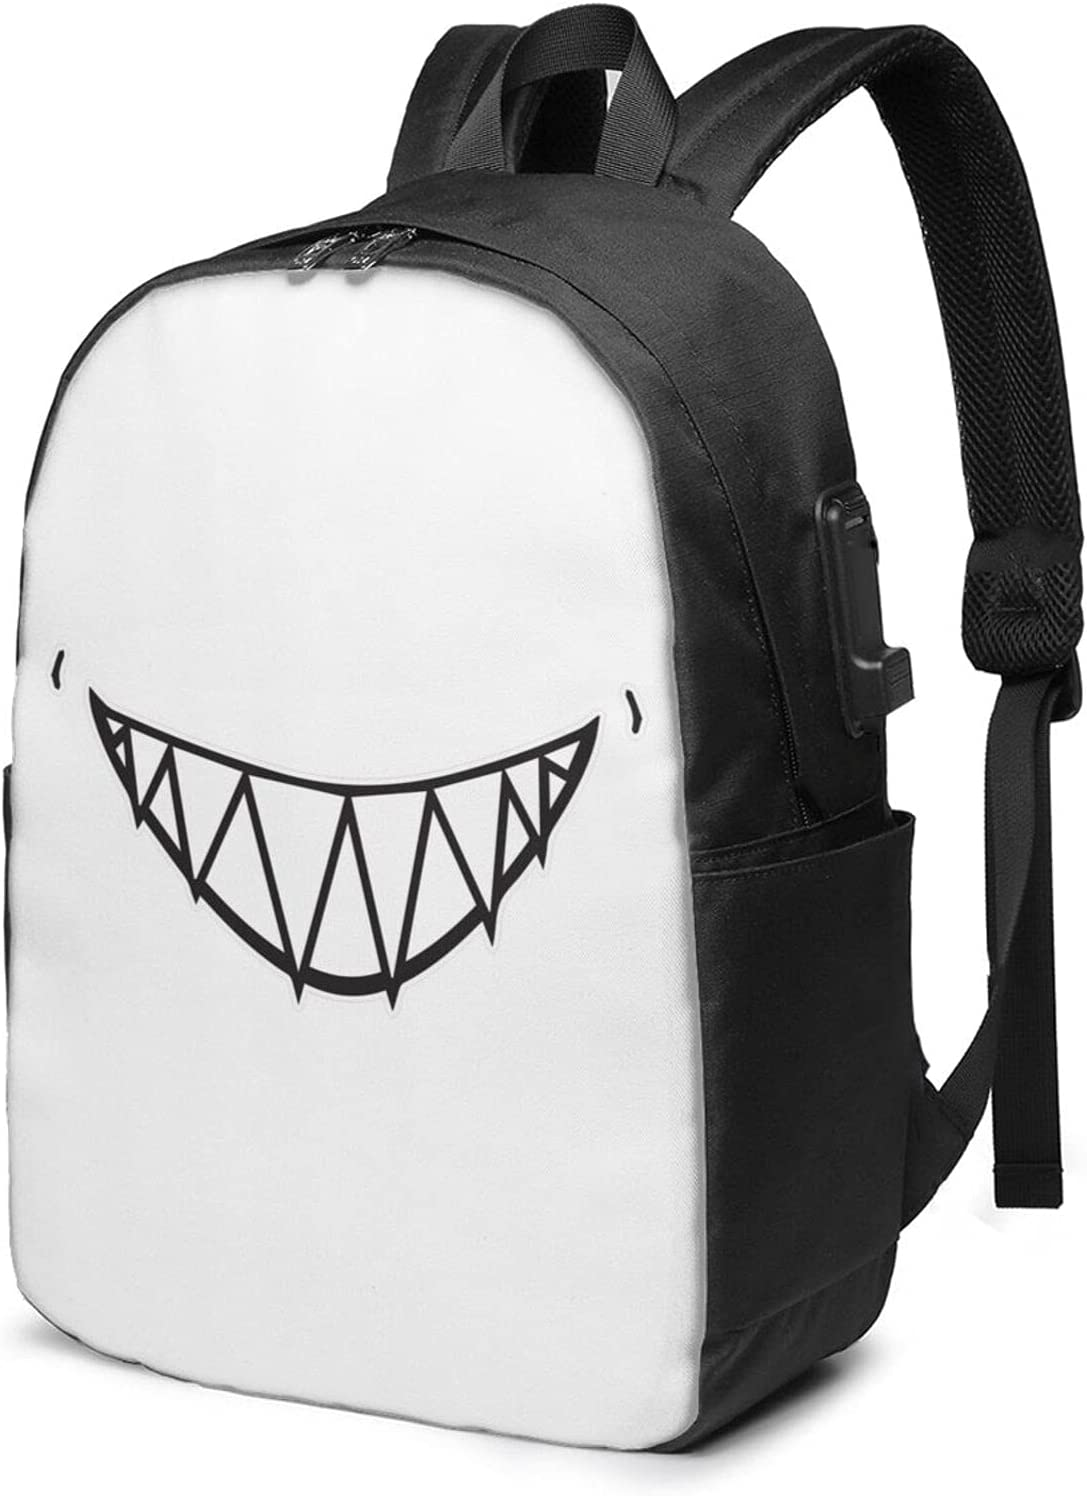 Halloween Mask Laptop Now on sale Backpack With Usb Super Special SALE held La 17 Inch Charging Port